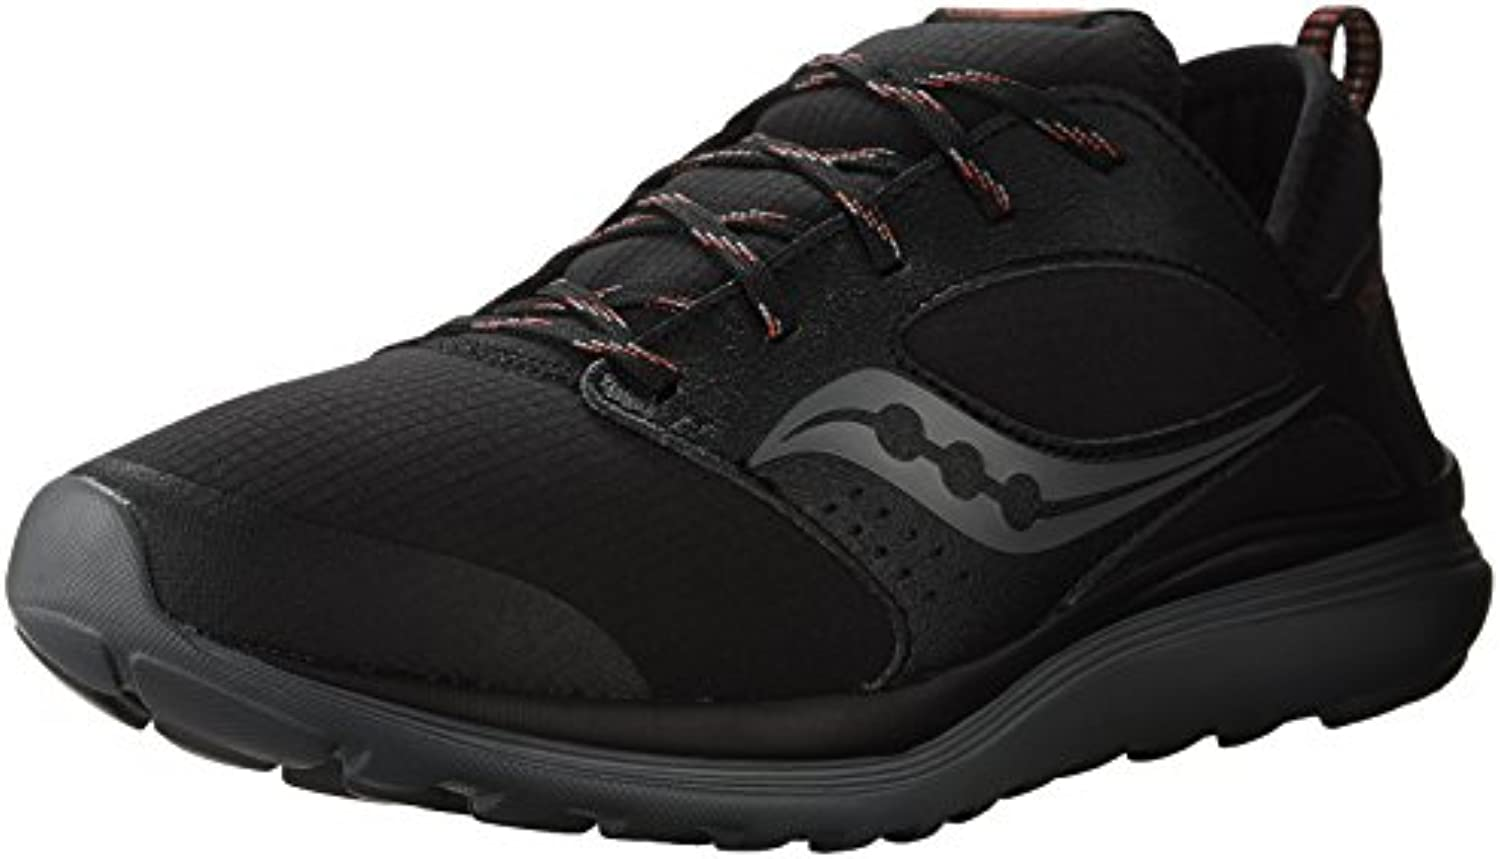 Saucony Men's Kineta Relay Runshield Running Shoe